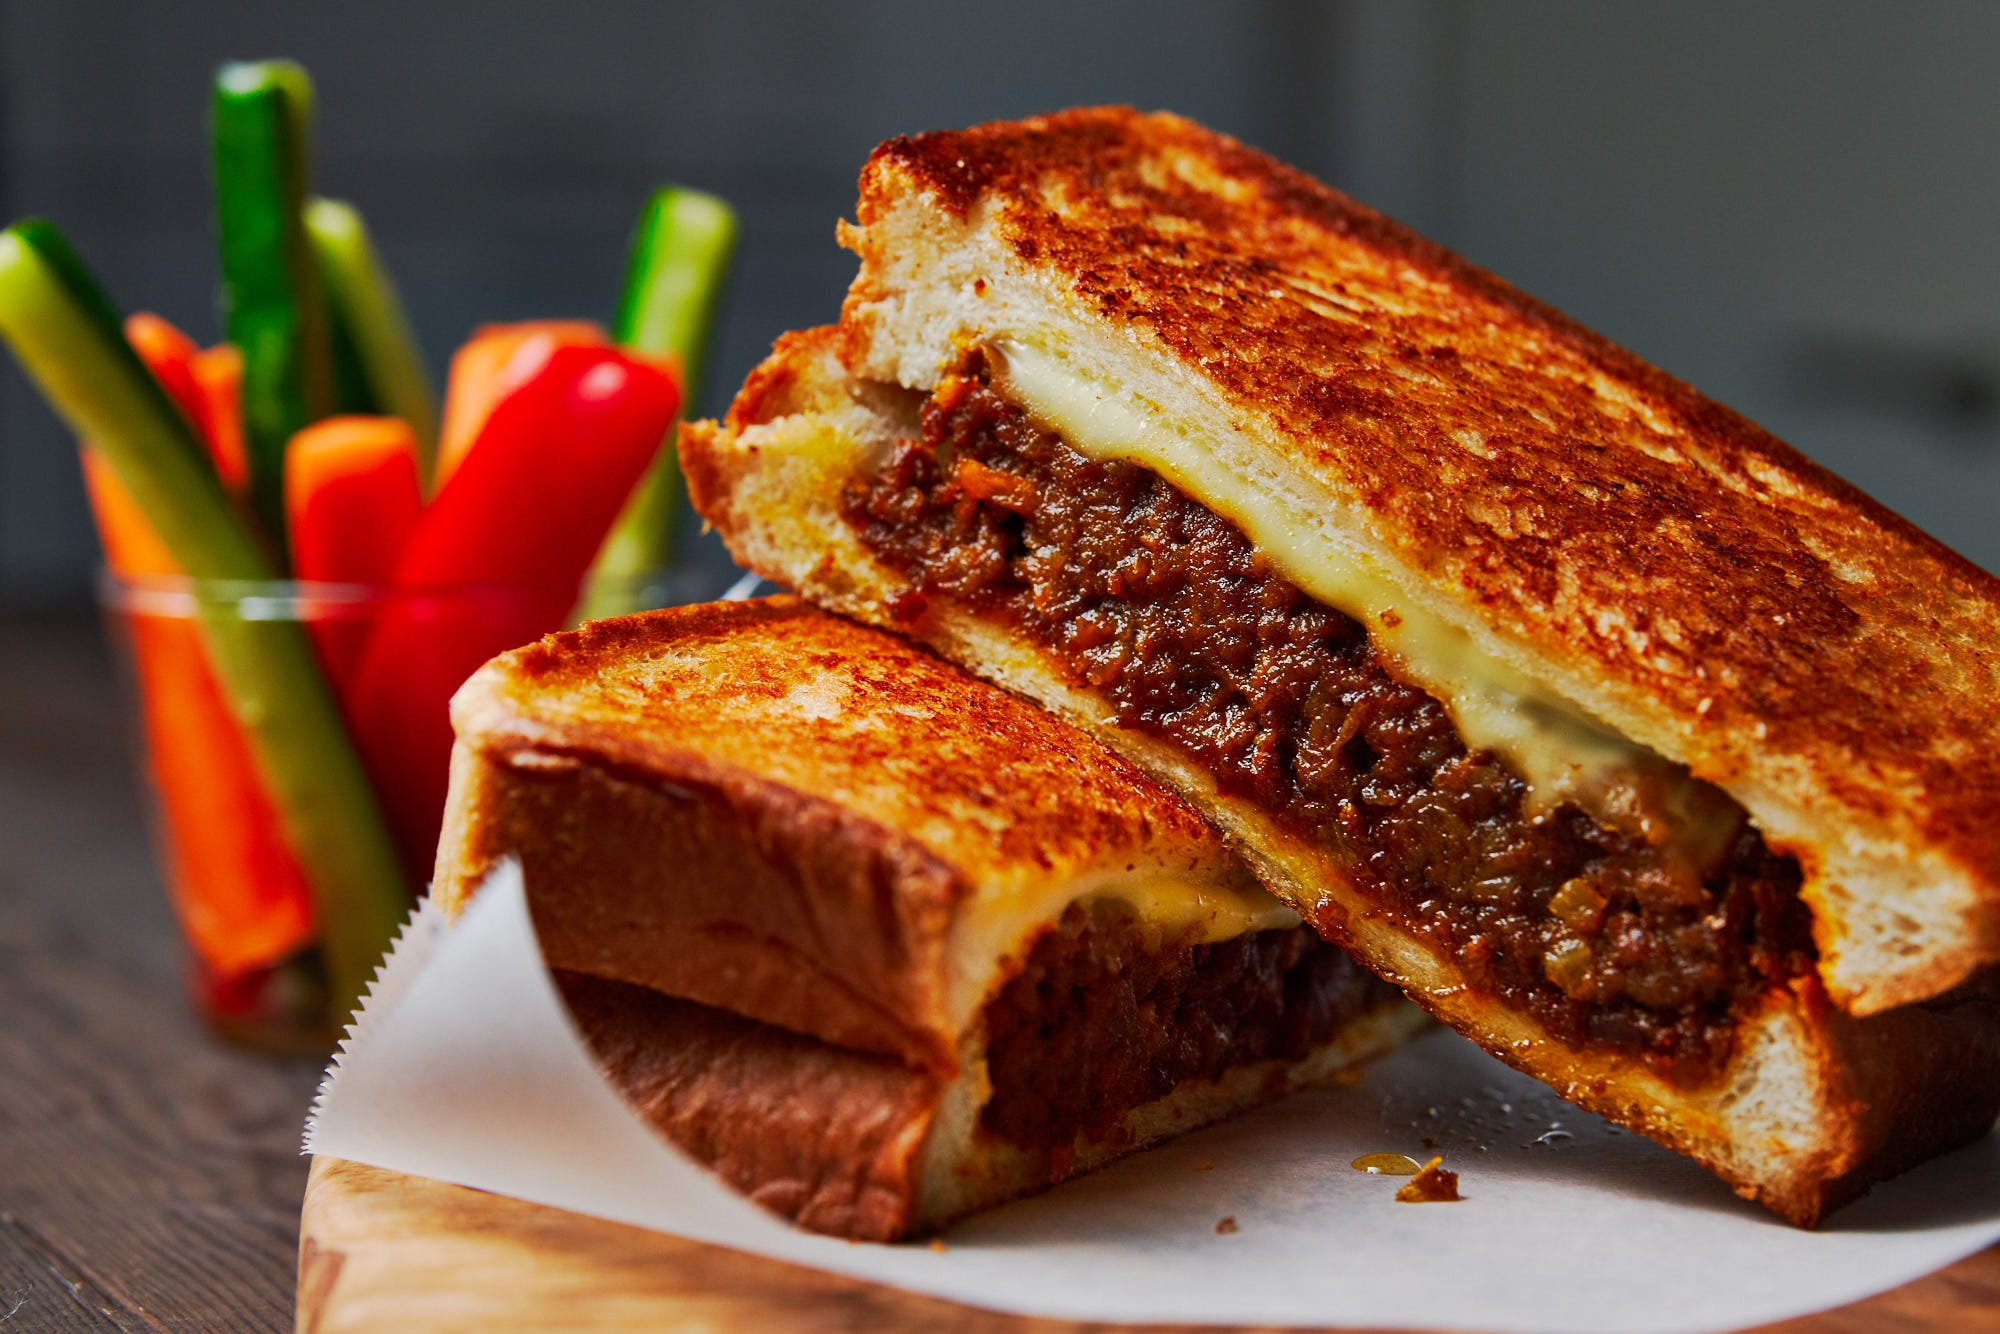 With spicy savoy curry and molten cheese stuffed between two buttery slices of crisp sandwich bread, this mashup of Japanese Curry Bread and a Grilled Cheese Sandwich is irresistibly good.